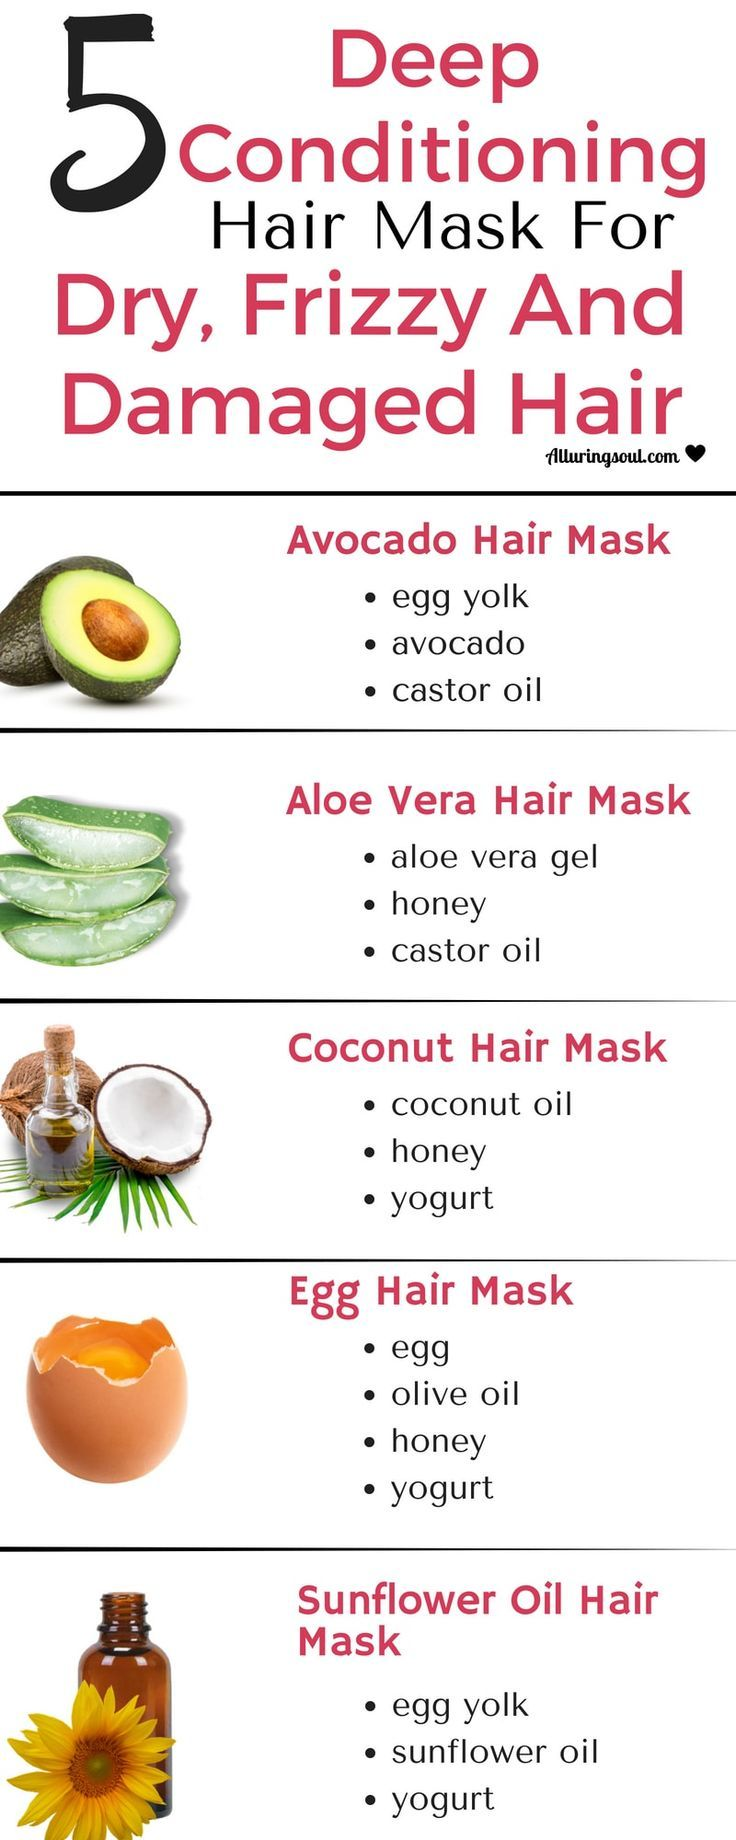 5 Deep Conditioning Hair Mask For Dry Frizzy Damaged Hair